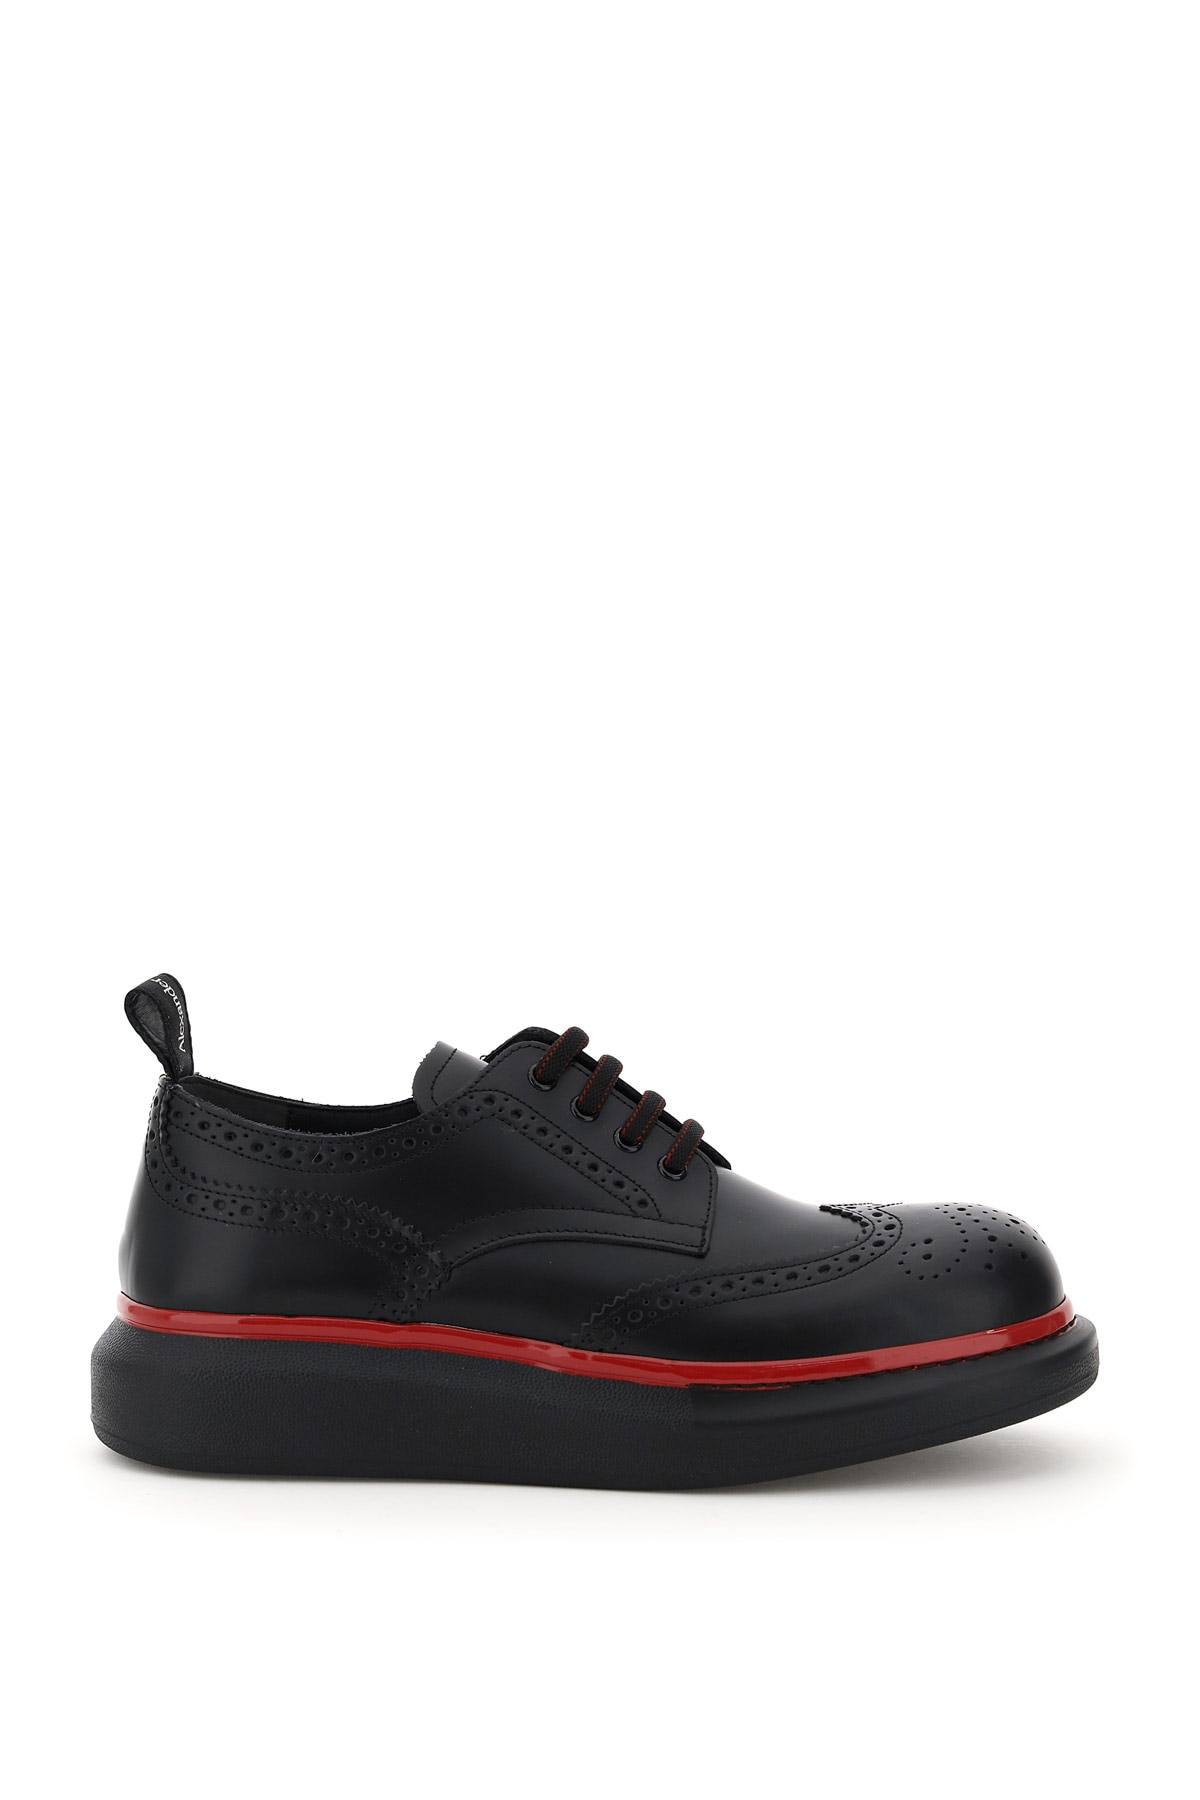 ALEXANDER MCQUEEN HYBRID LACE-UP SHOES 44 Black, Red Leather